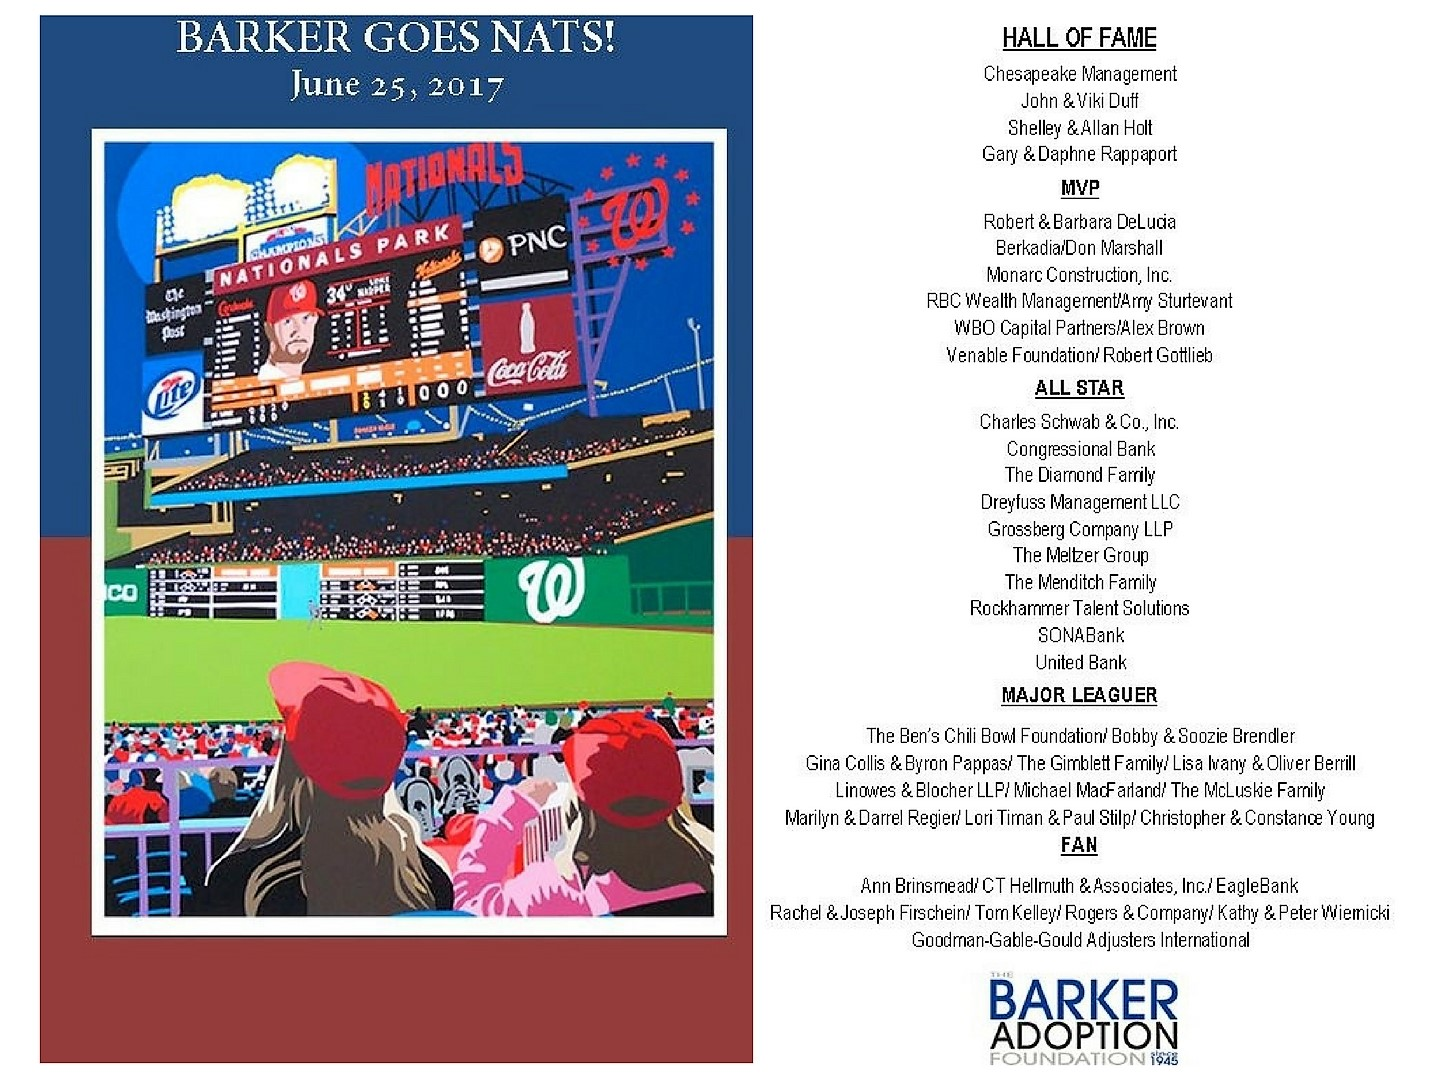 barker-goes-nats-thank-you-list